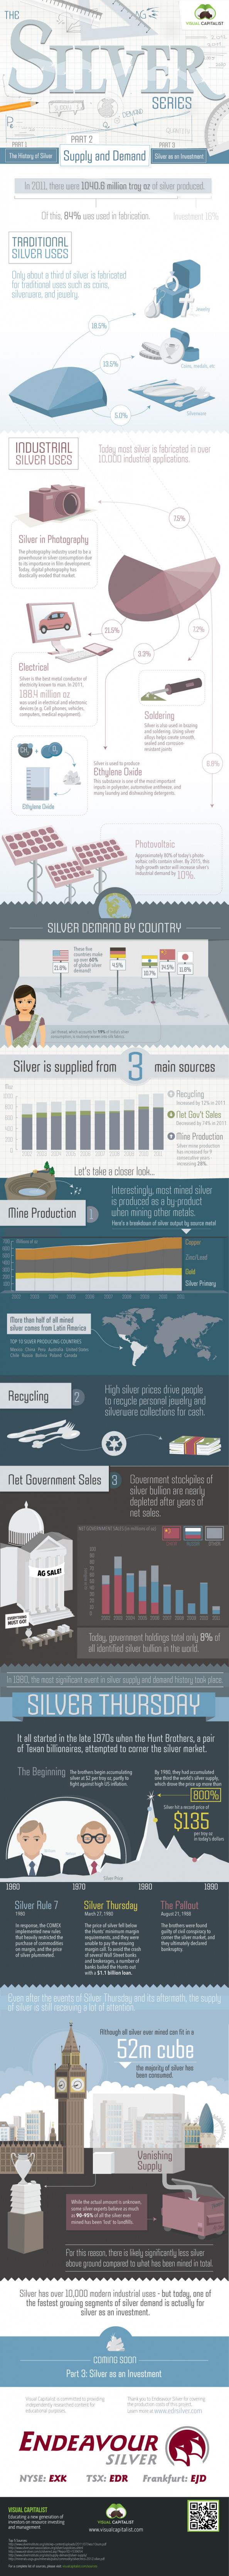 The Silver Series: Supply and Demand Infographic